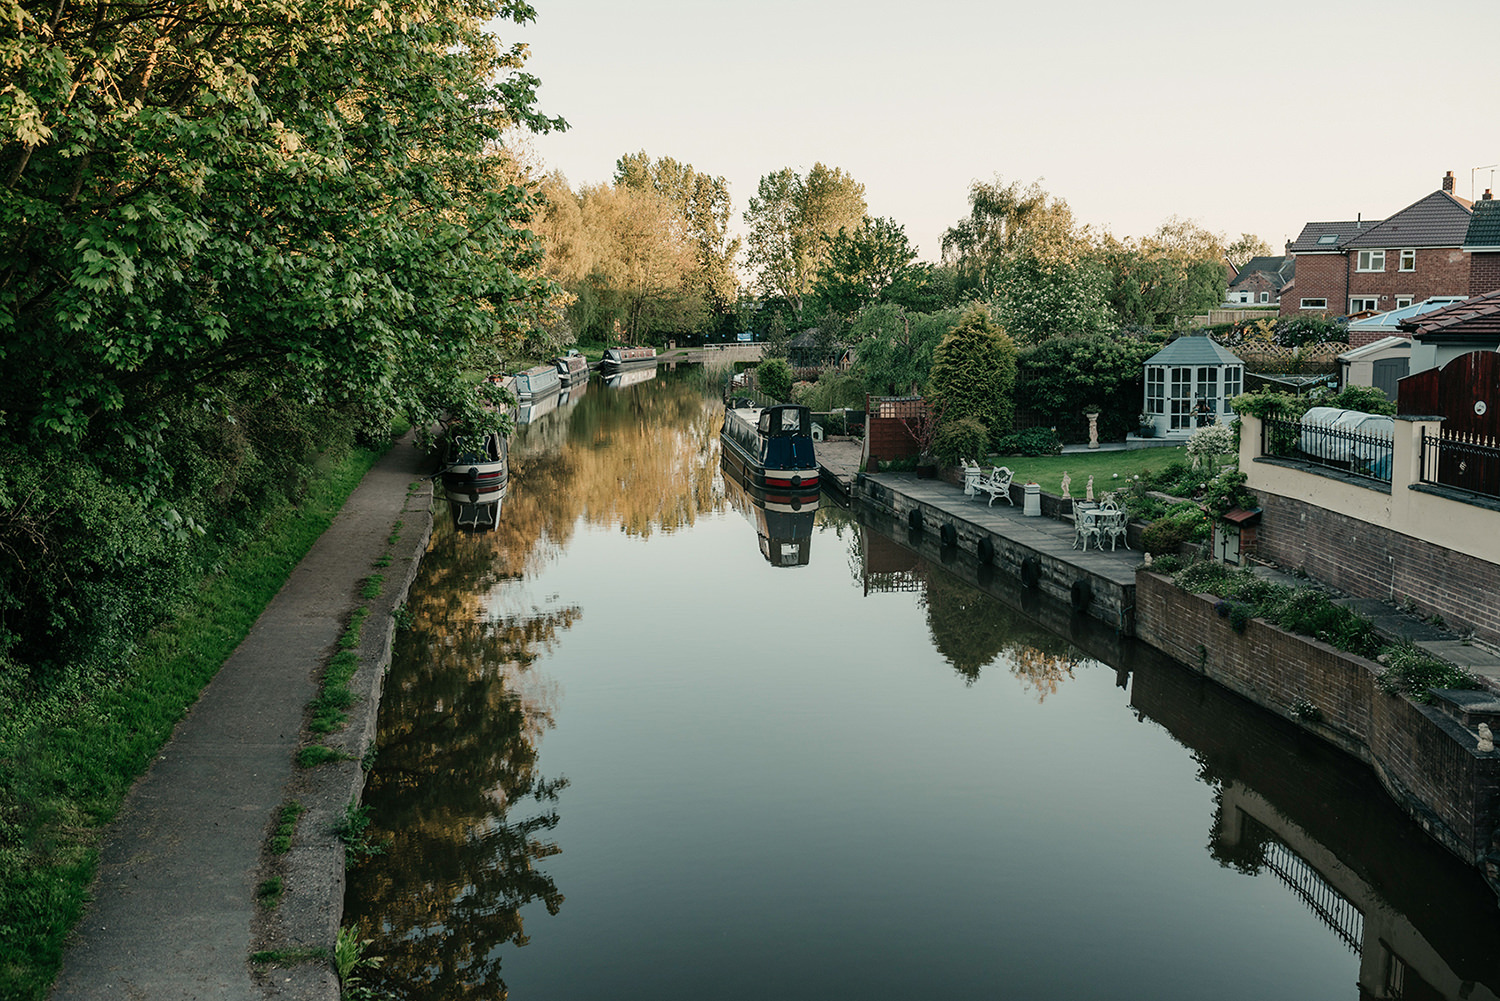 A beautiful canal in Cheshire at sunset